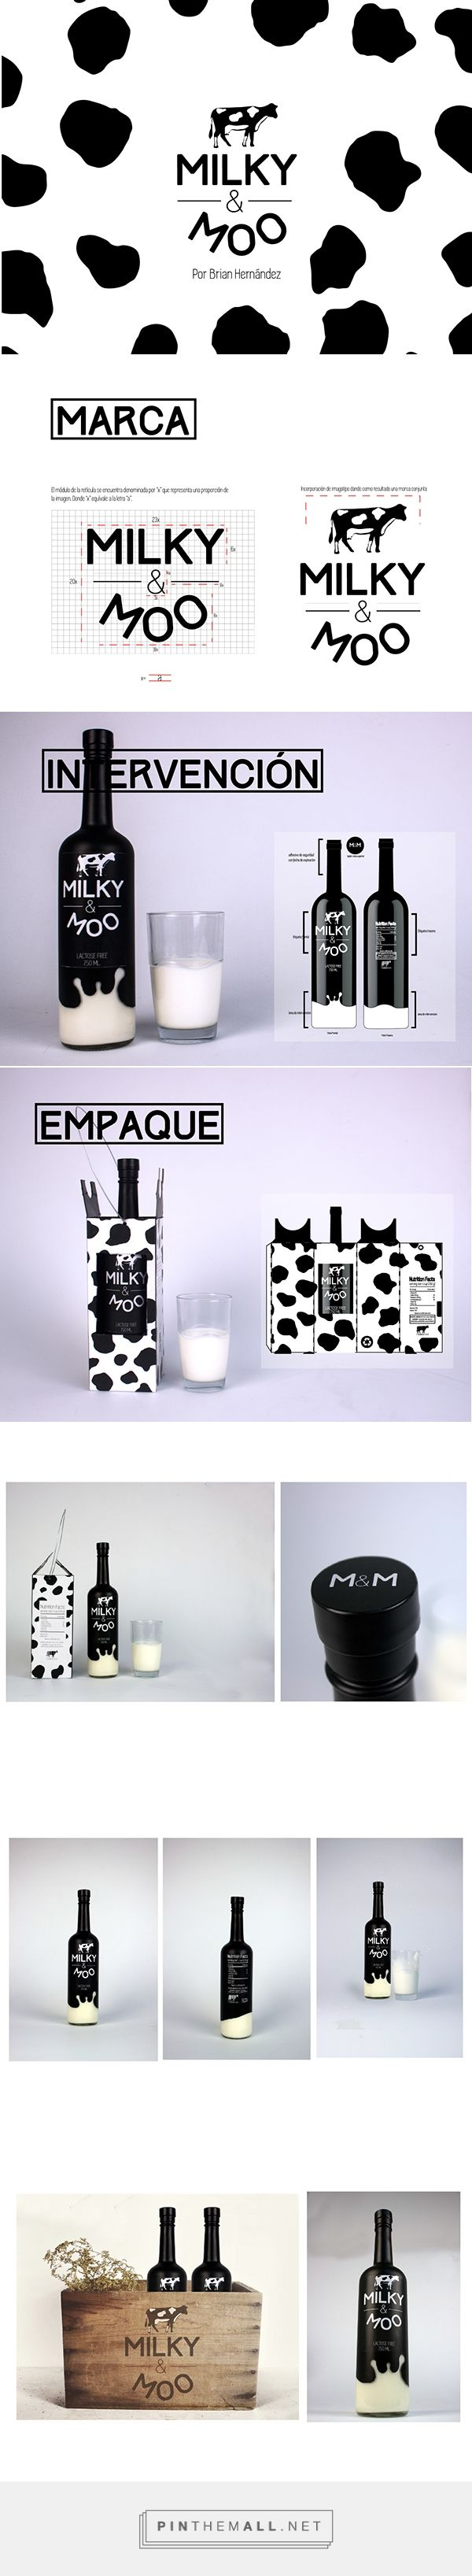 Branding and packaging design Milky & Moo on Behance by Brian Hernández Tegucigalpa, Honduras curated by Packaging Diva PD. Cute packaging concept for milk : )